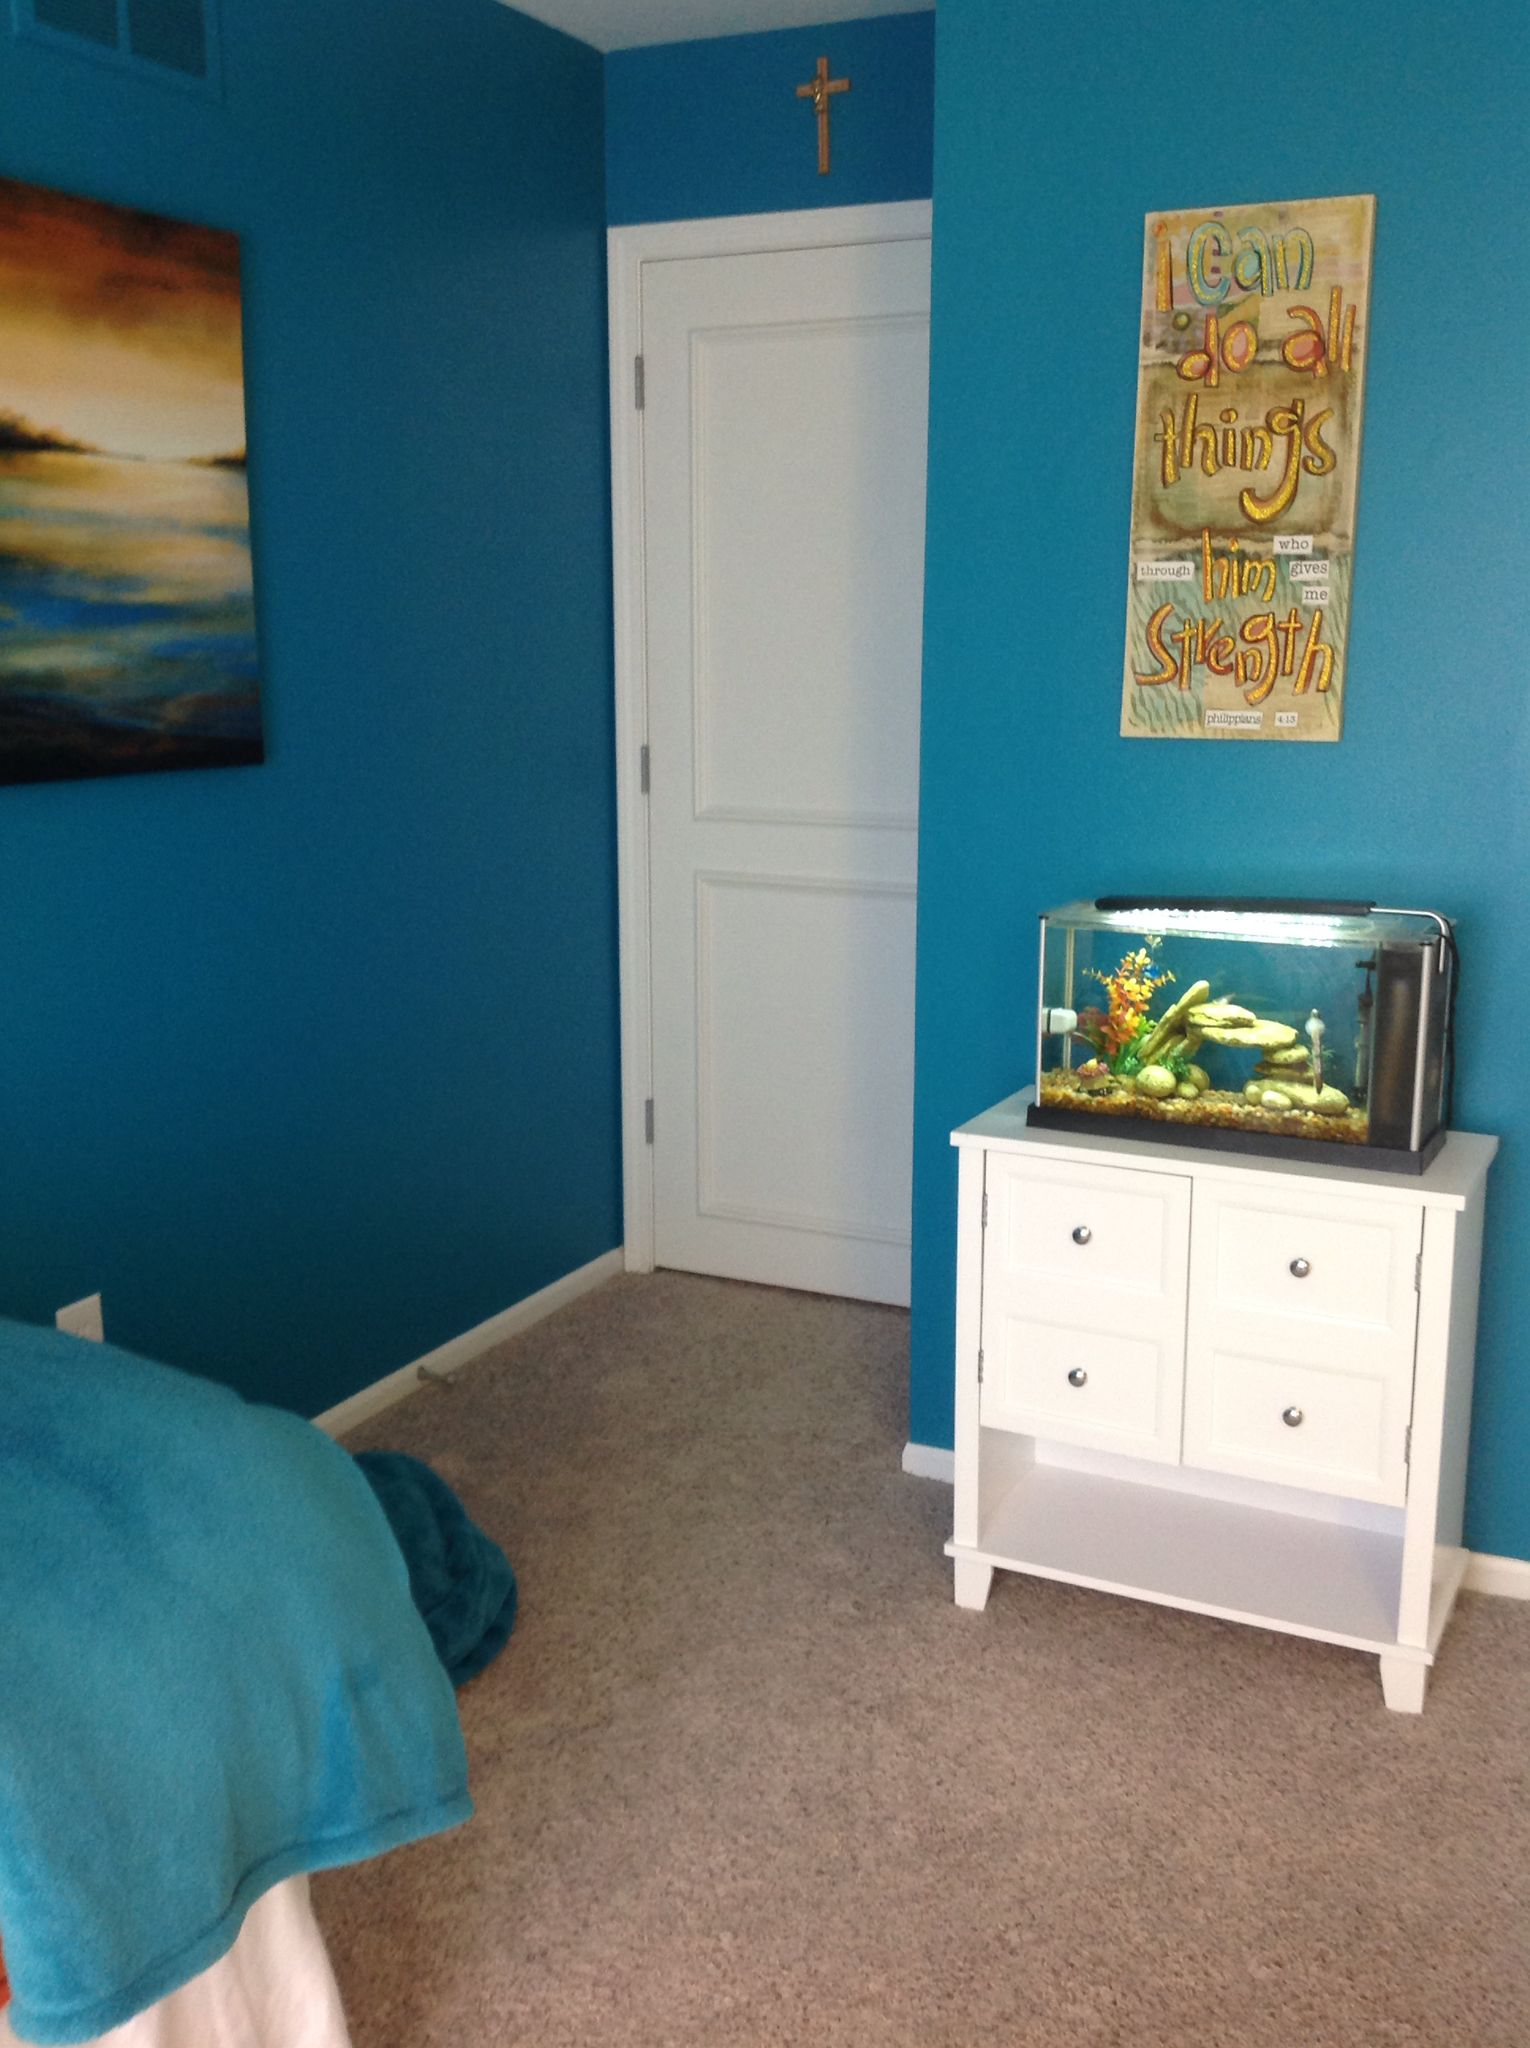 Having a fish tank is a cute idea for your tumblr bedroom